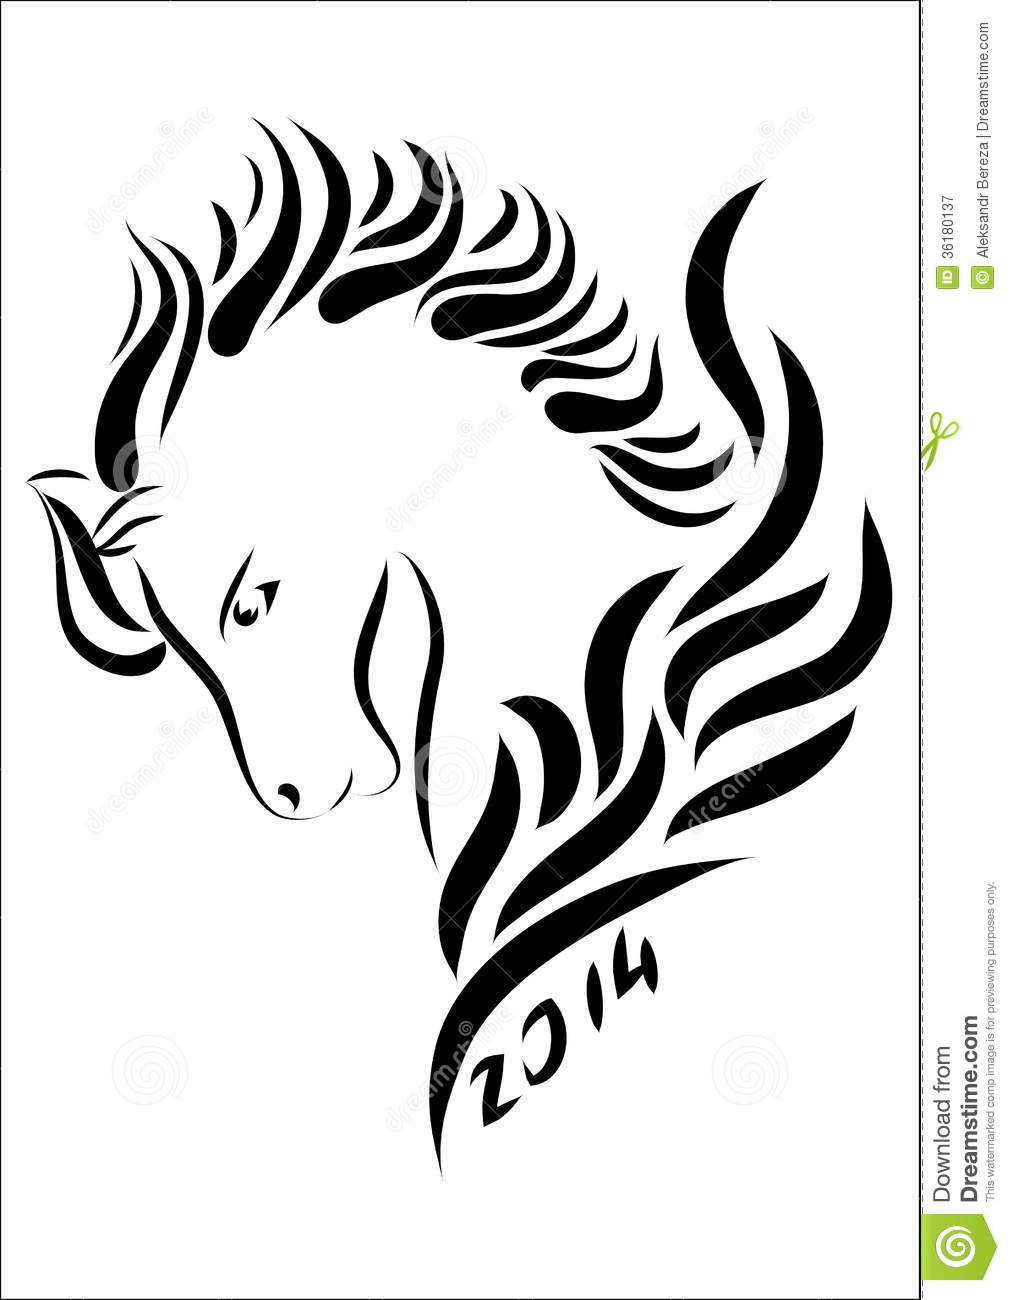 Horse Line Drawing Tattoo : Year of the horse royalty free stock photography image